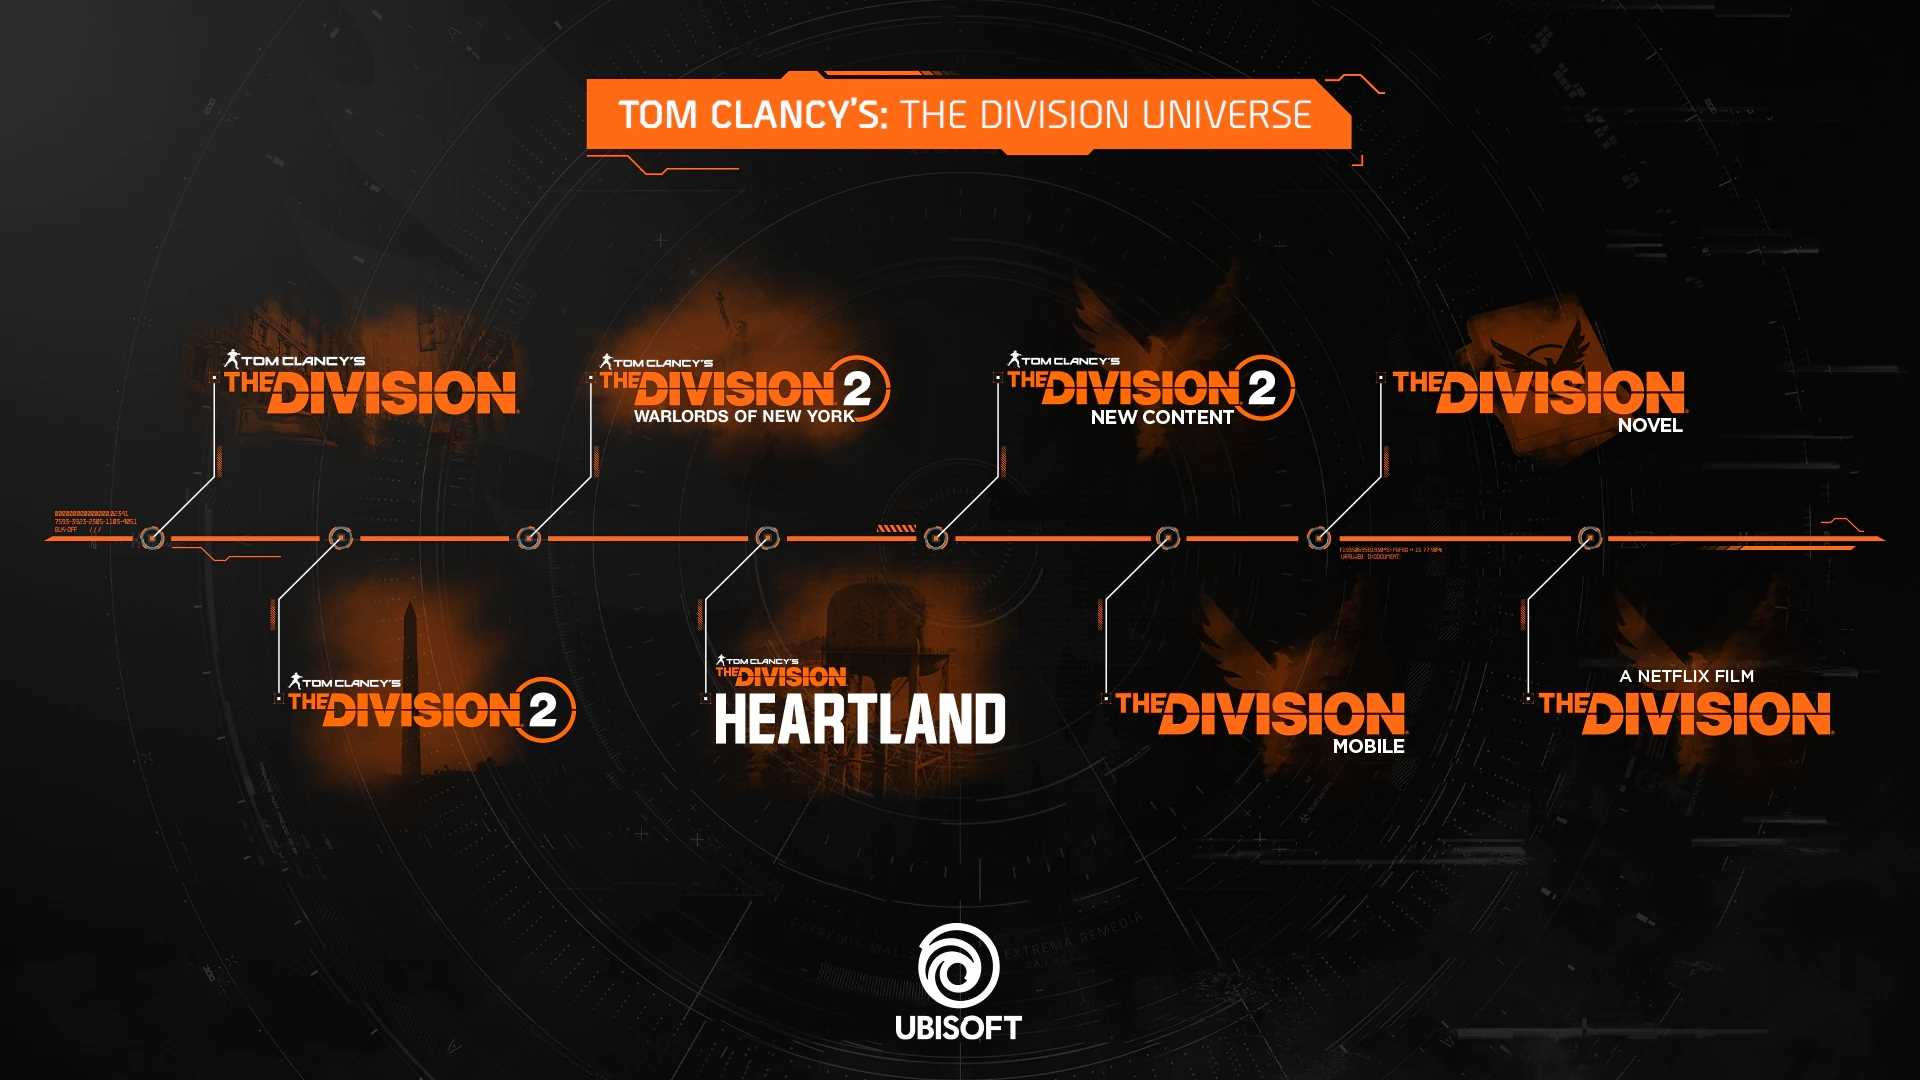 Tom Clancy's The Division Heartland - The Division Universe